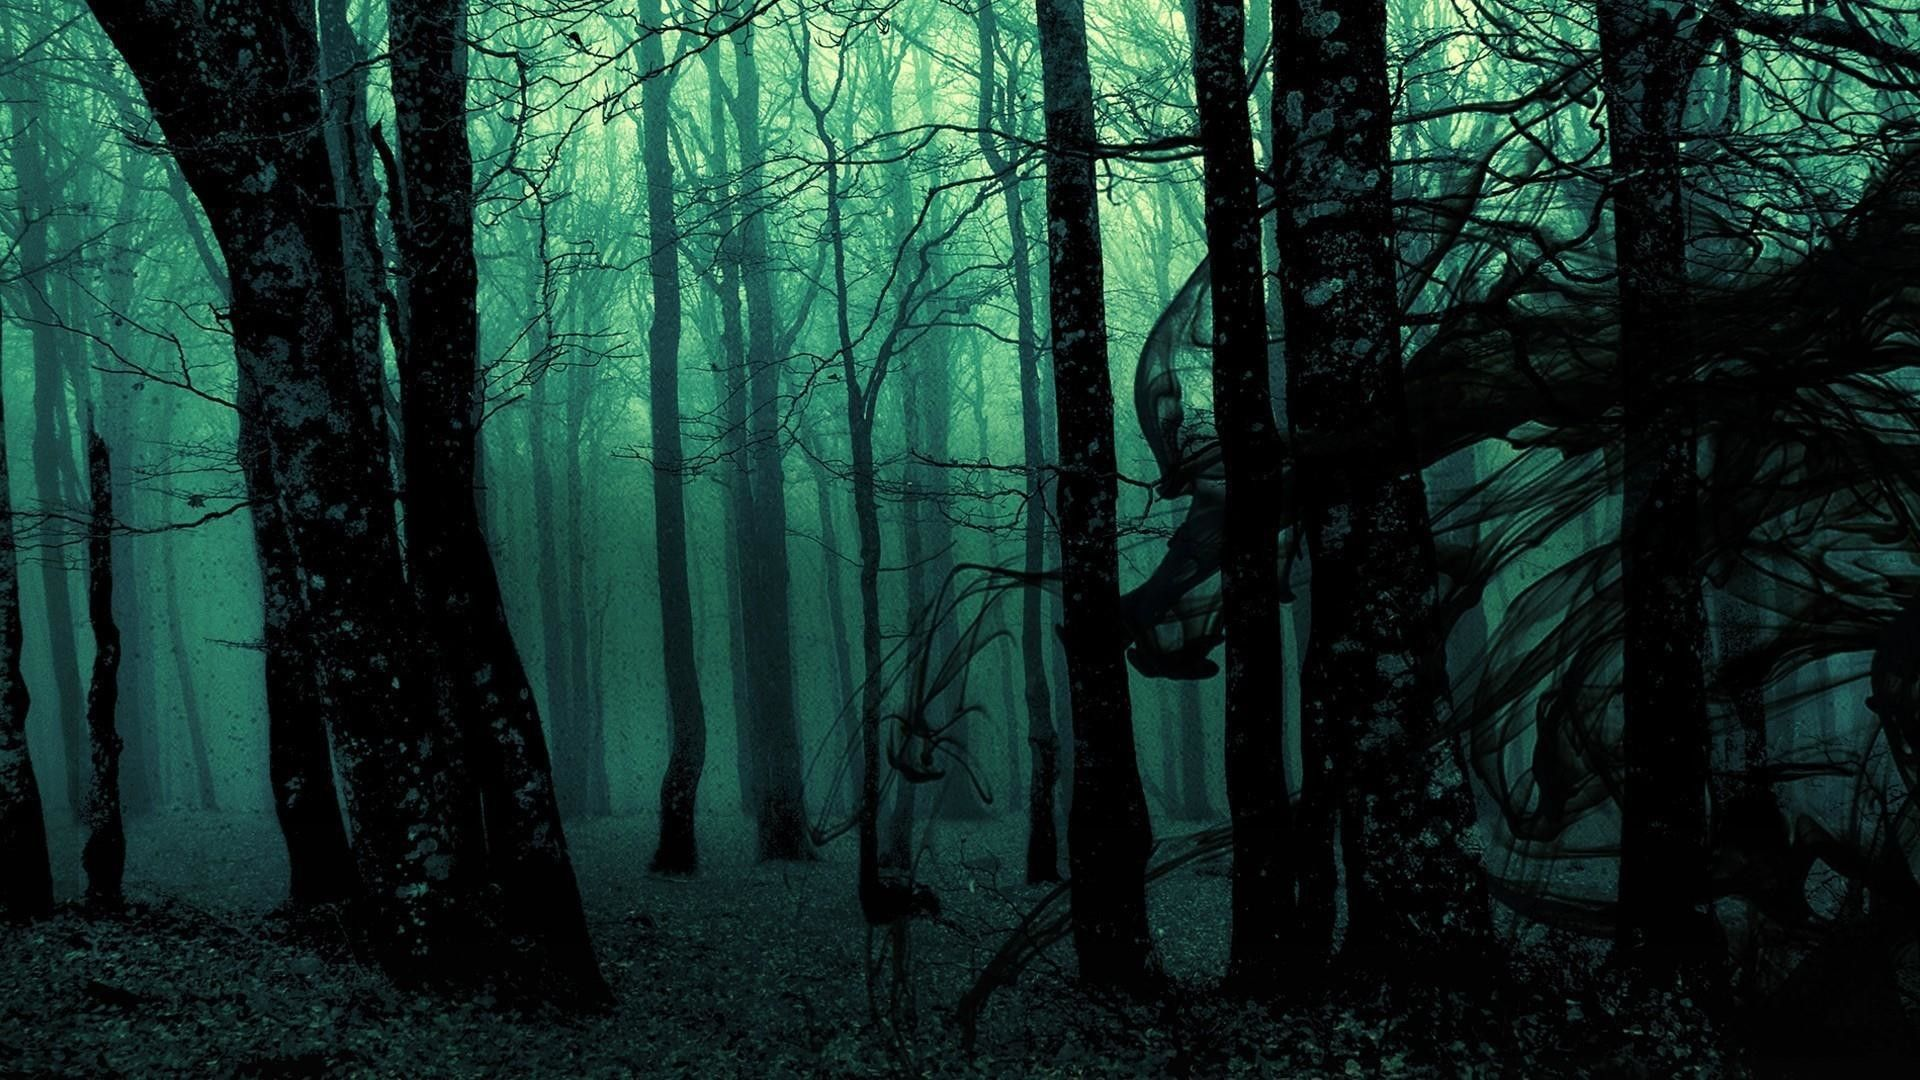 Rain Storm In Forest Looks So Dangerous 19201080 Gothic Wallpapers Dark Forest Wallpaper Forest Wallpapers